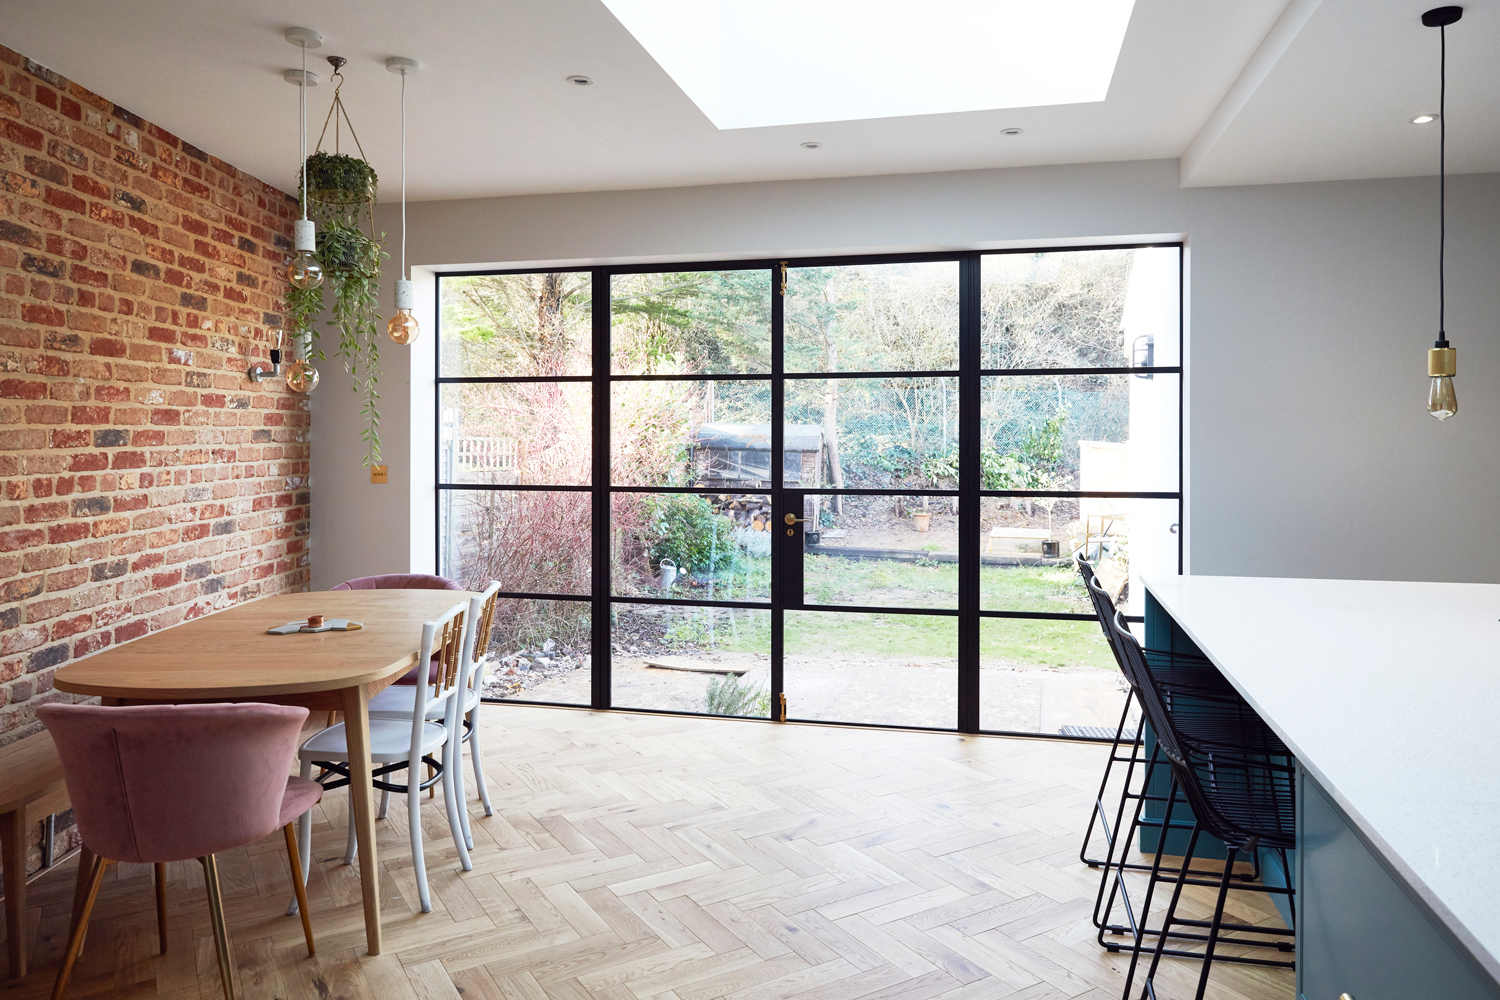 Crittall style patio doors with parquet oak flooring